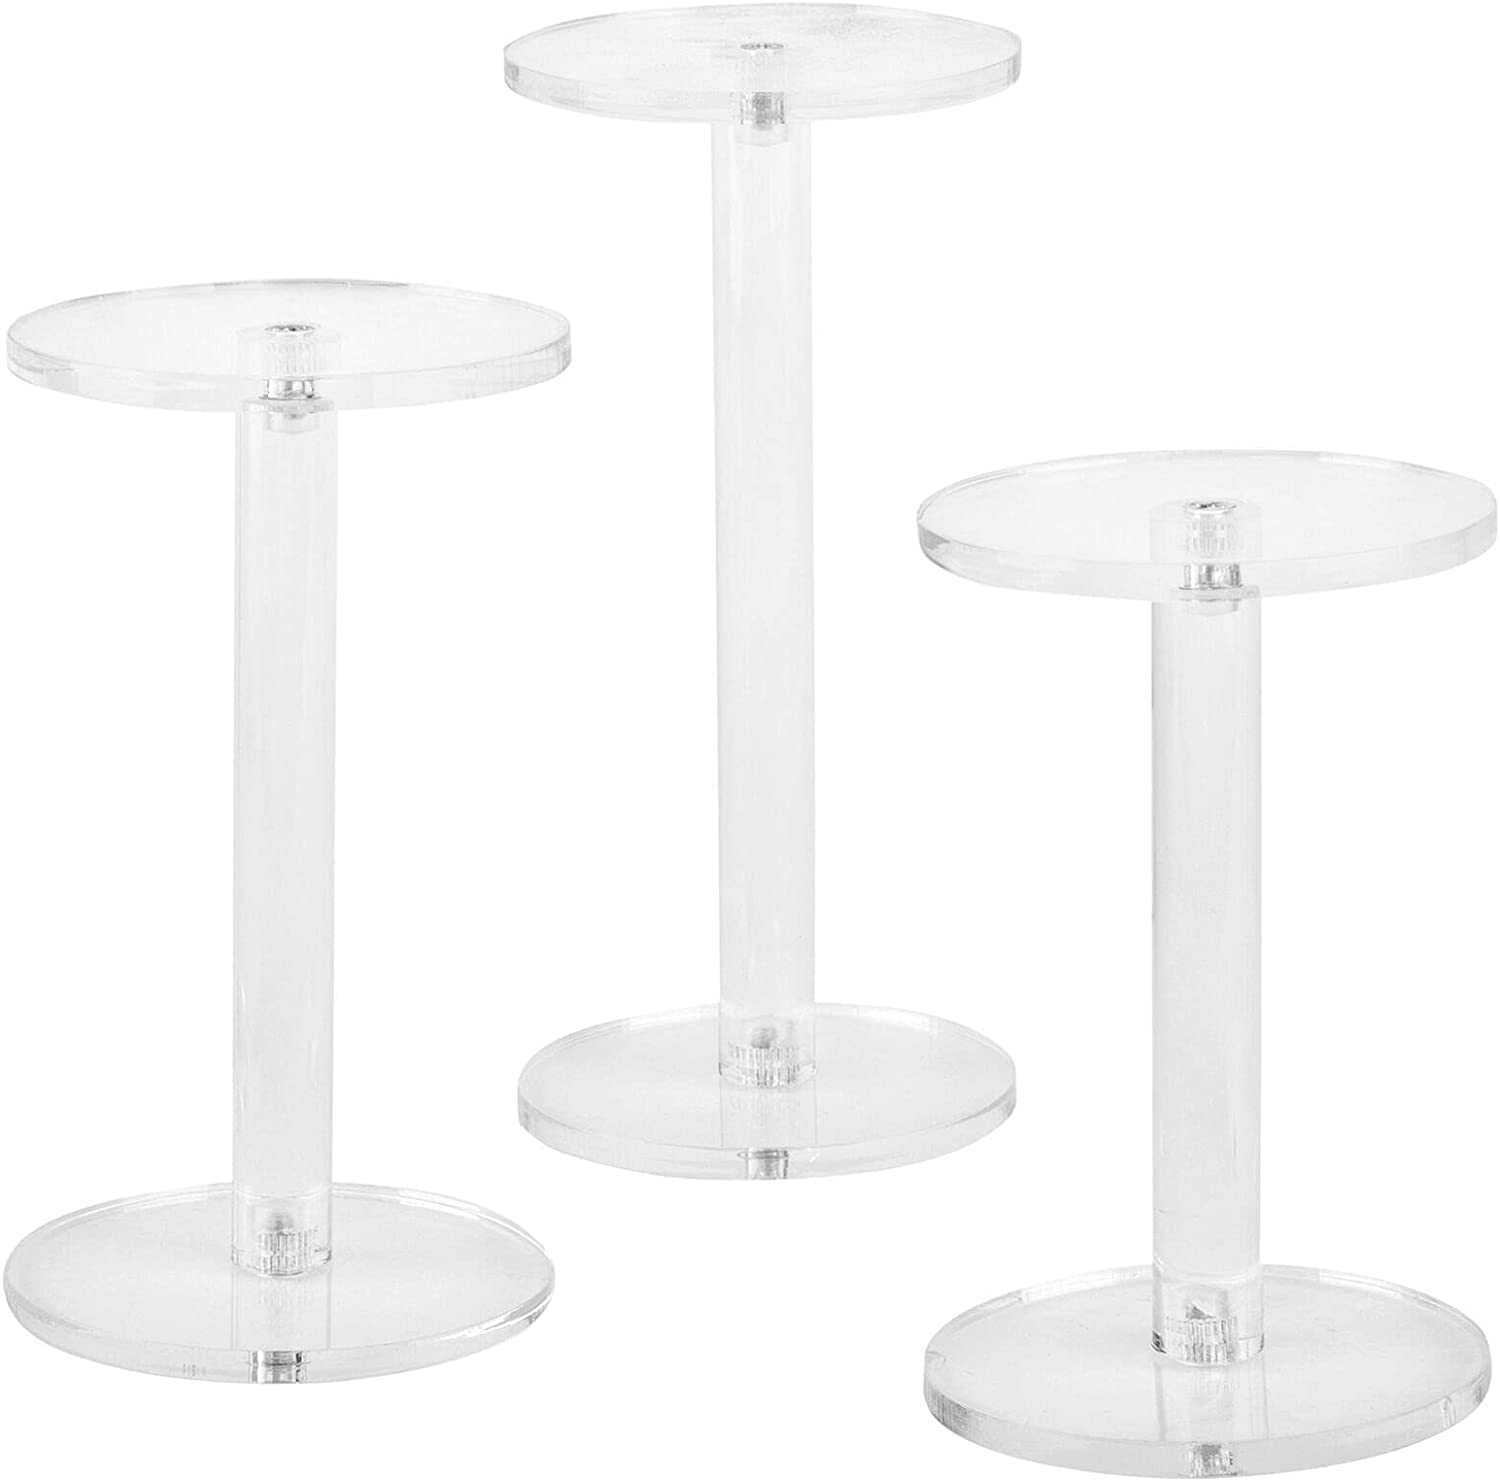 HUIJK Set of 3 Clear Round Acrylic Pedestal Display Risers Stand